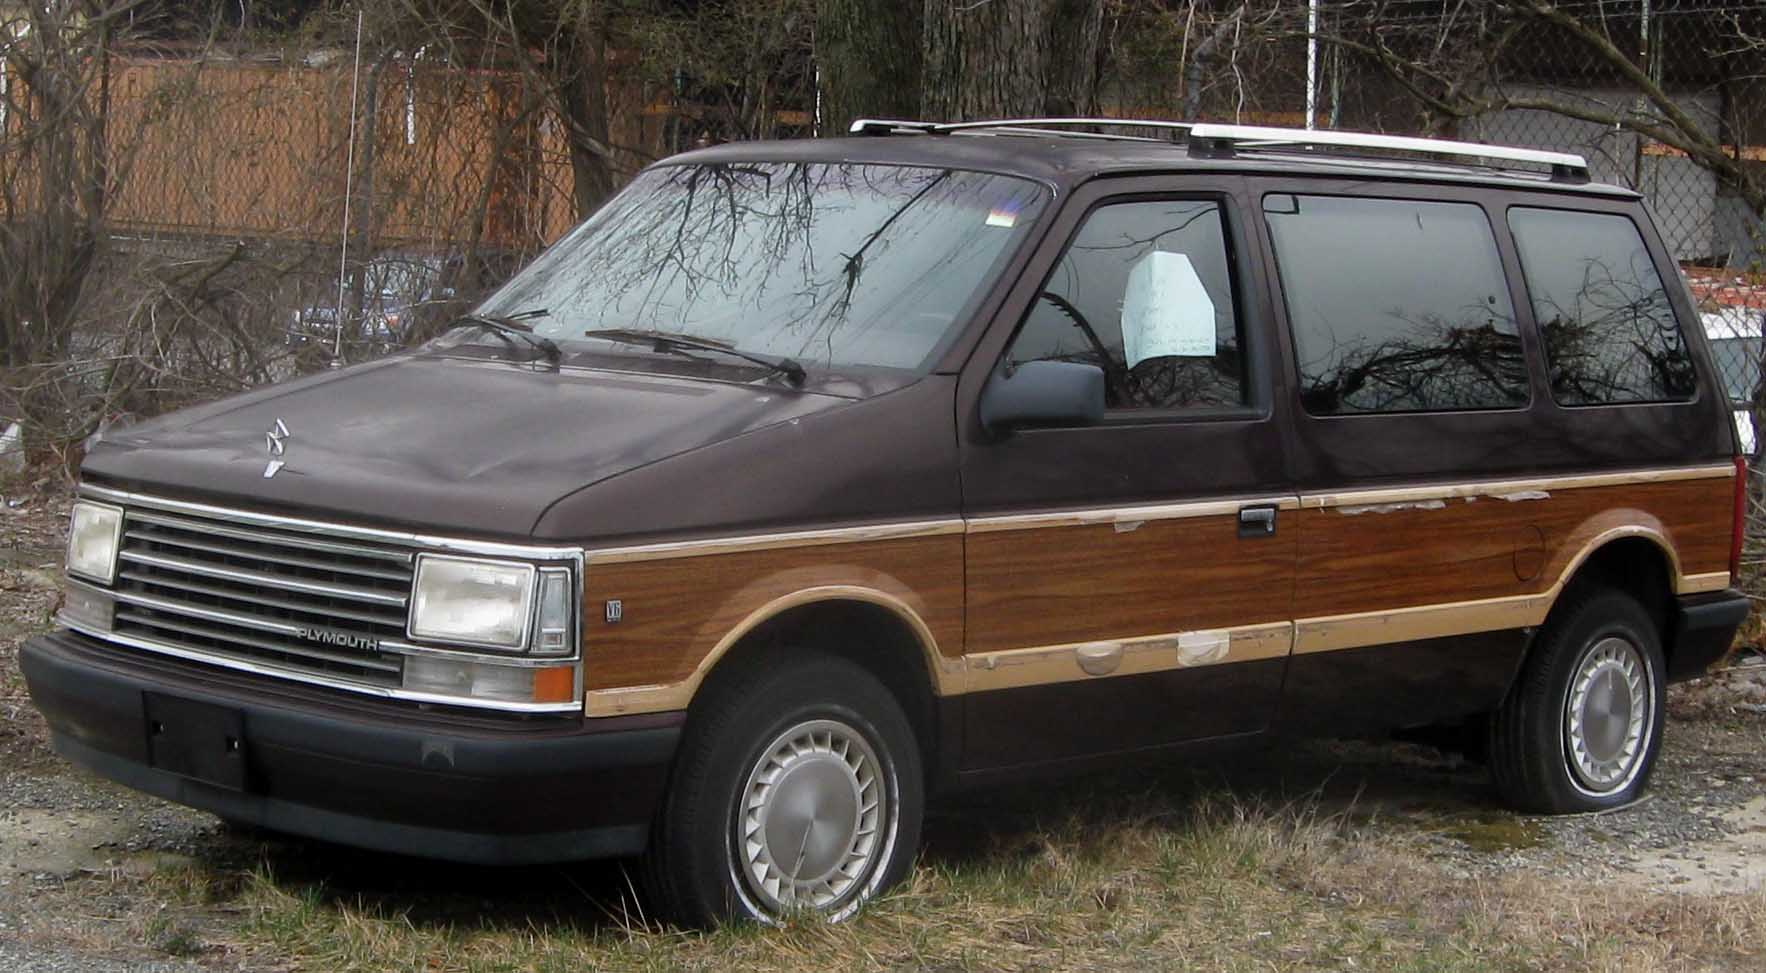 1995 plymouth voyager with File 1990 Plymouth Voyager on Pontiac Trans Sport 1990 as well 2006 10 01 archive further Plymouth Voyager Water Pump Location together with 1994 Plymouth Grand Voyager Overview C3235 together with Vehicle 579482 Chrysler Town And Country 1996.